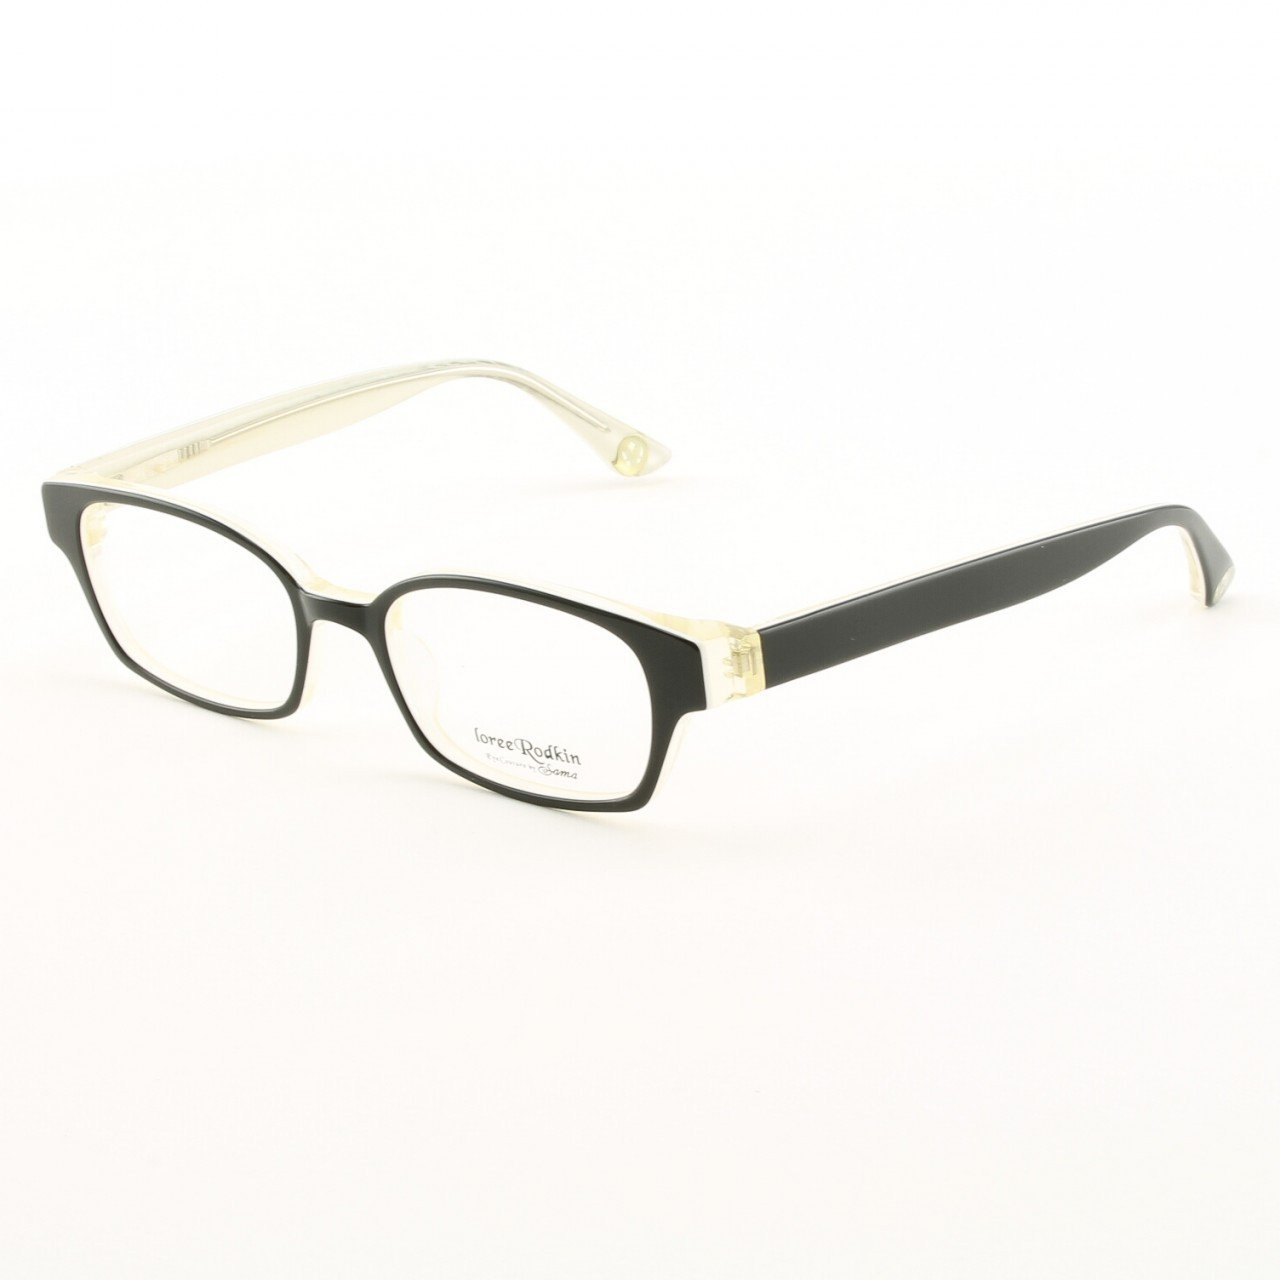 Loree Rodkin Evan Eyeglasses by Sama Col. Black with Clear Lenses